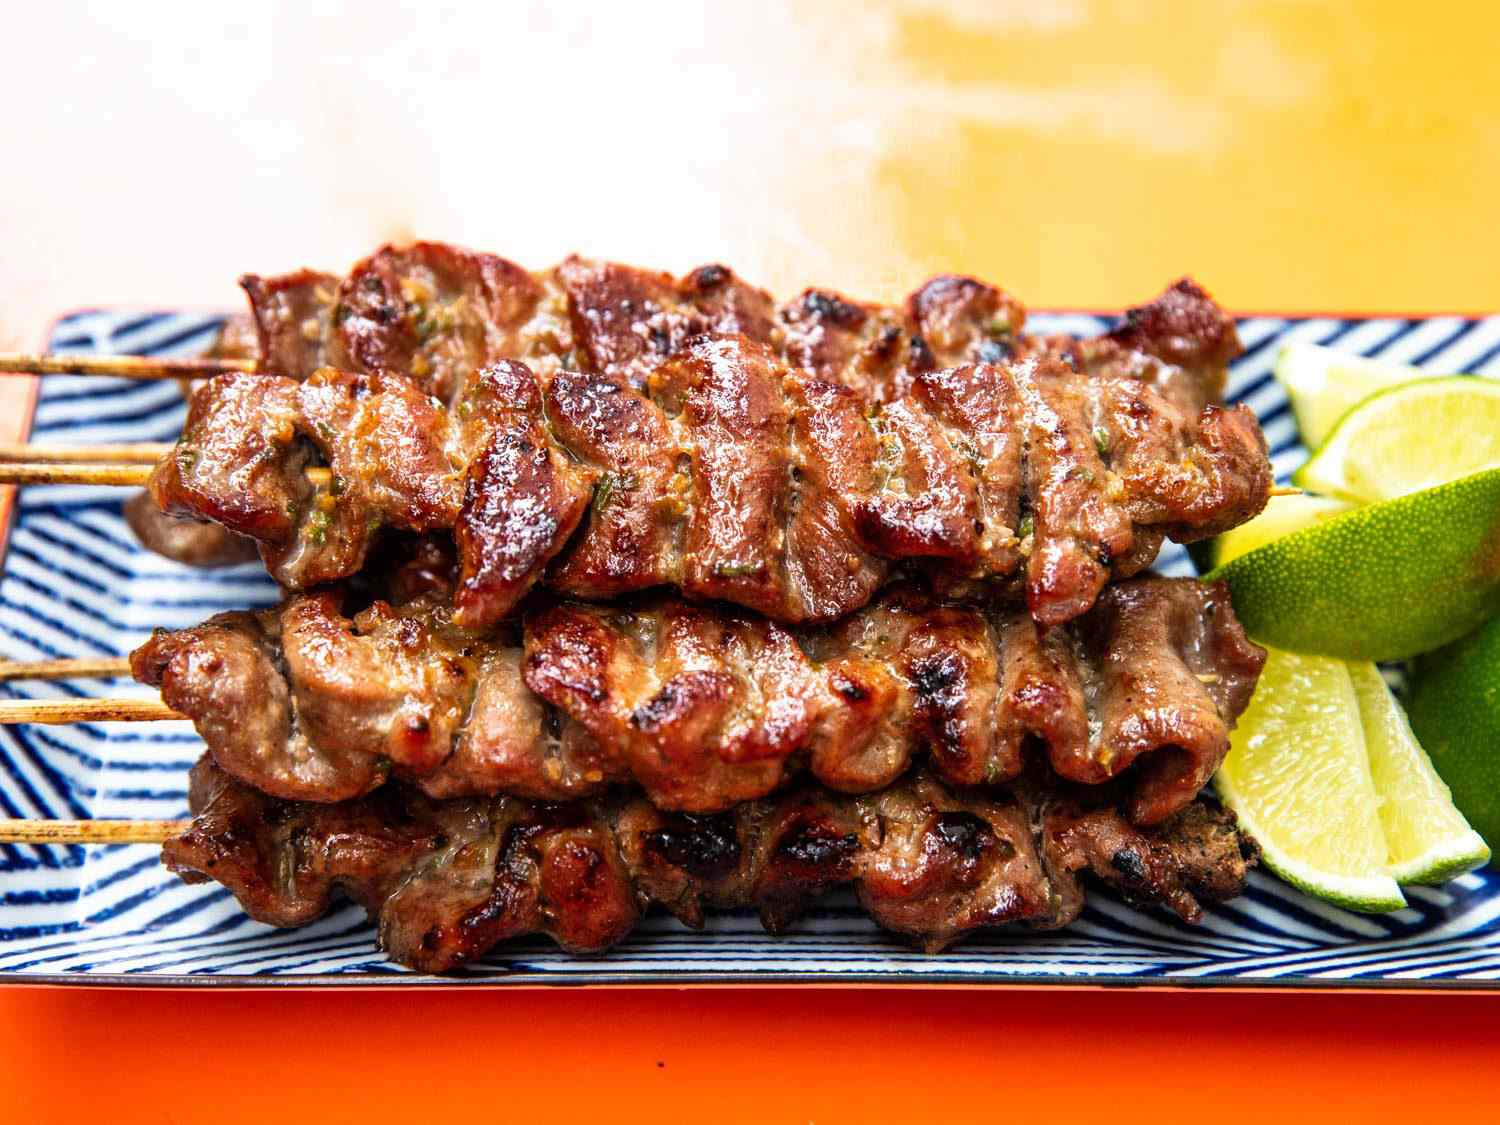 Closeup side view of a platter of THai-style grilled pork skewers with lime wedges